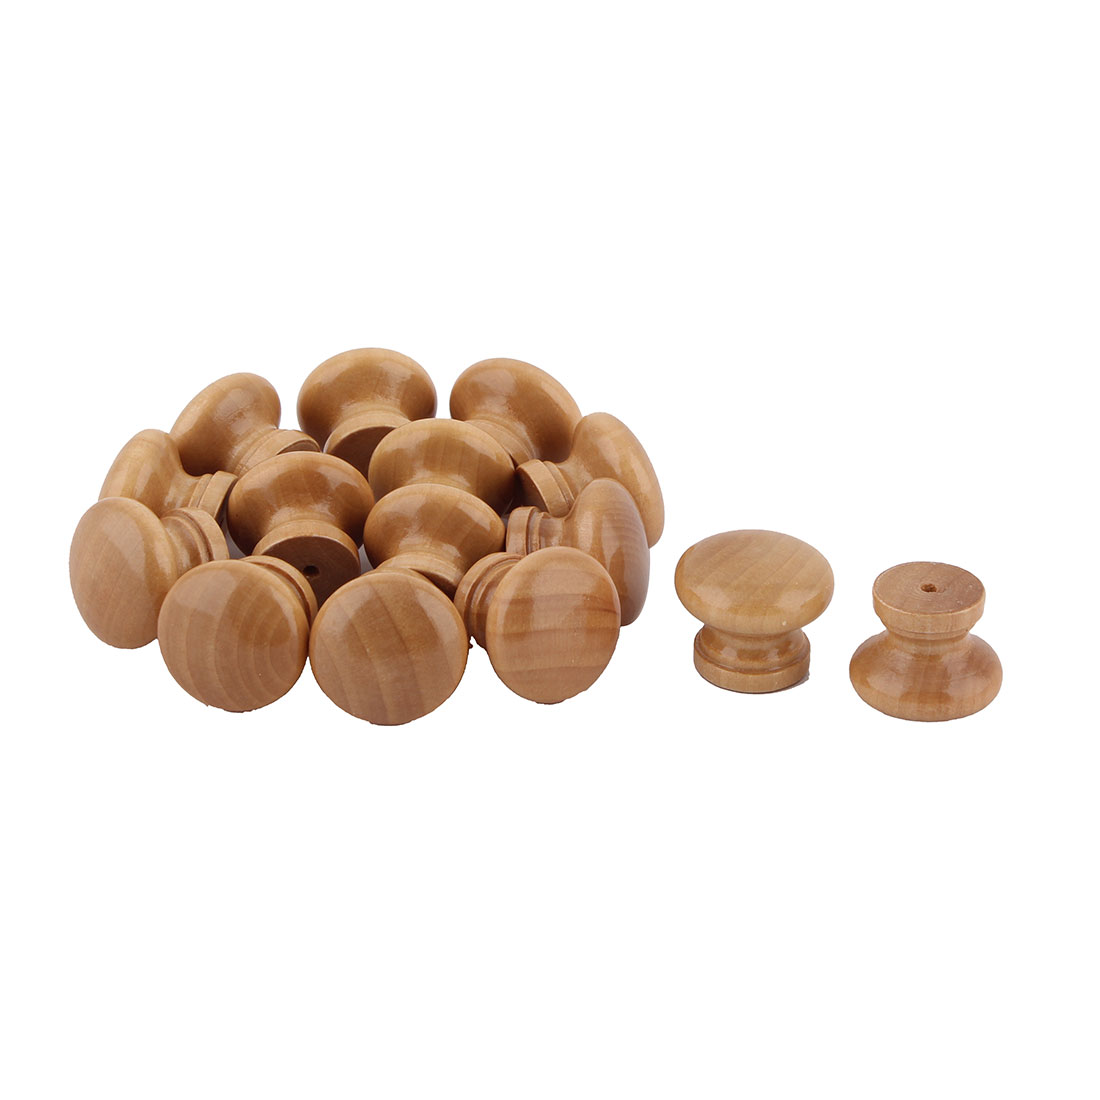 Household Office Wooden Round Shaped Cabinet Drawer Wardrobe Pull Knob Handle 15 Pcs